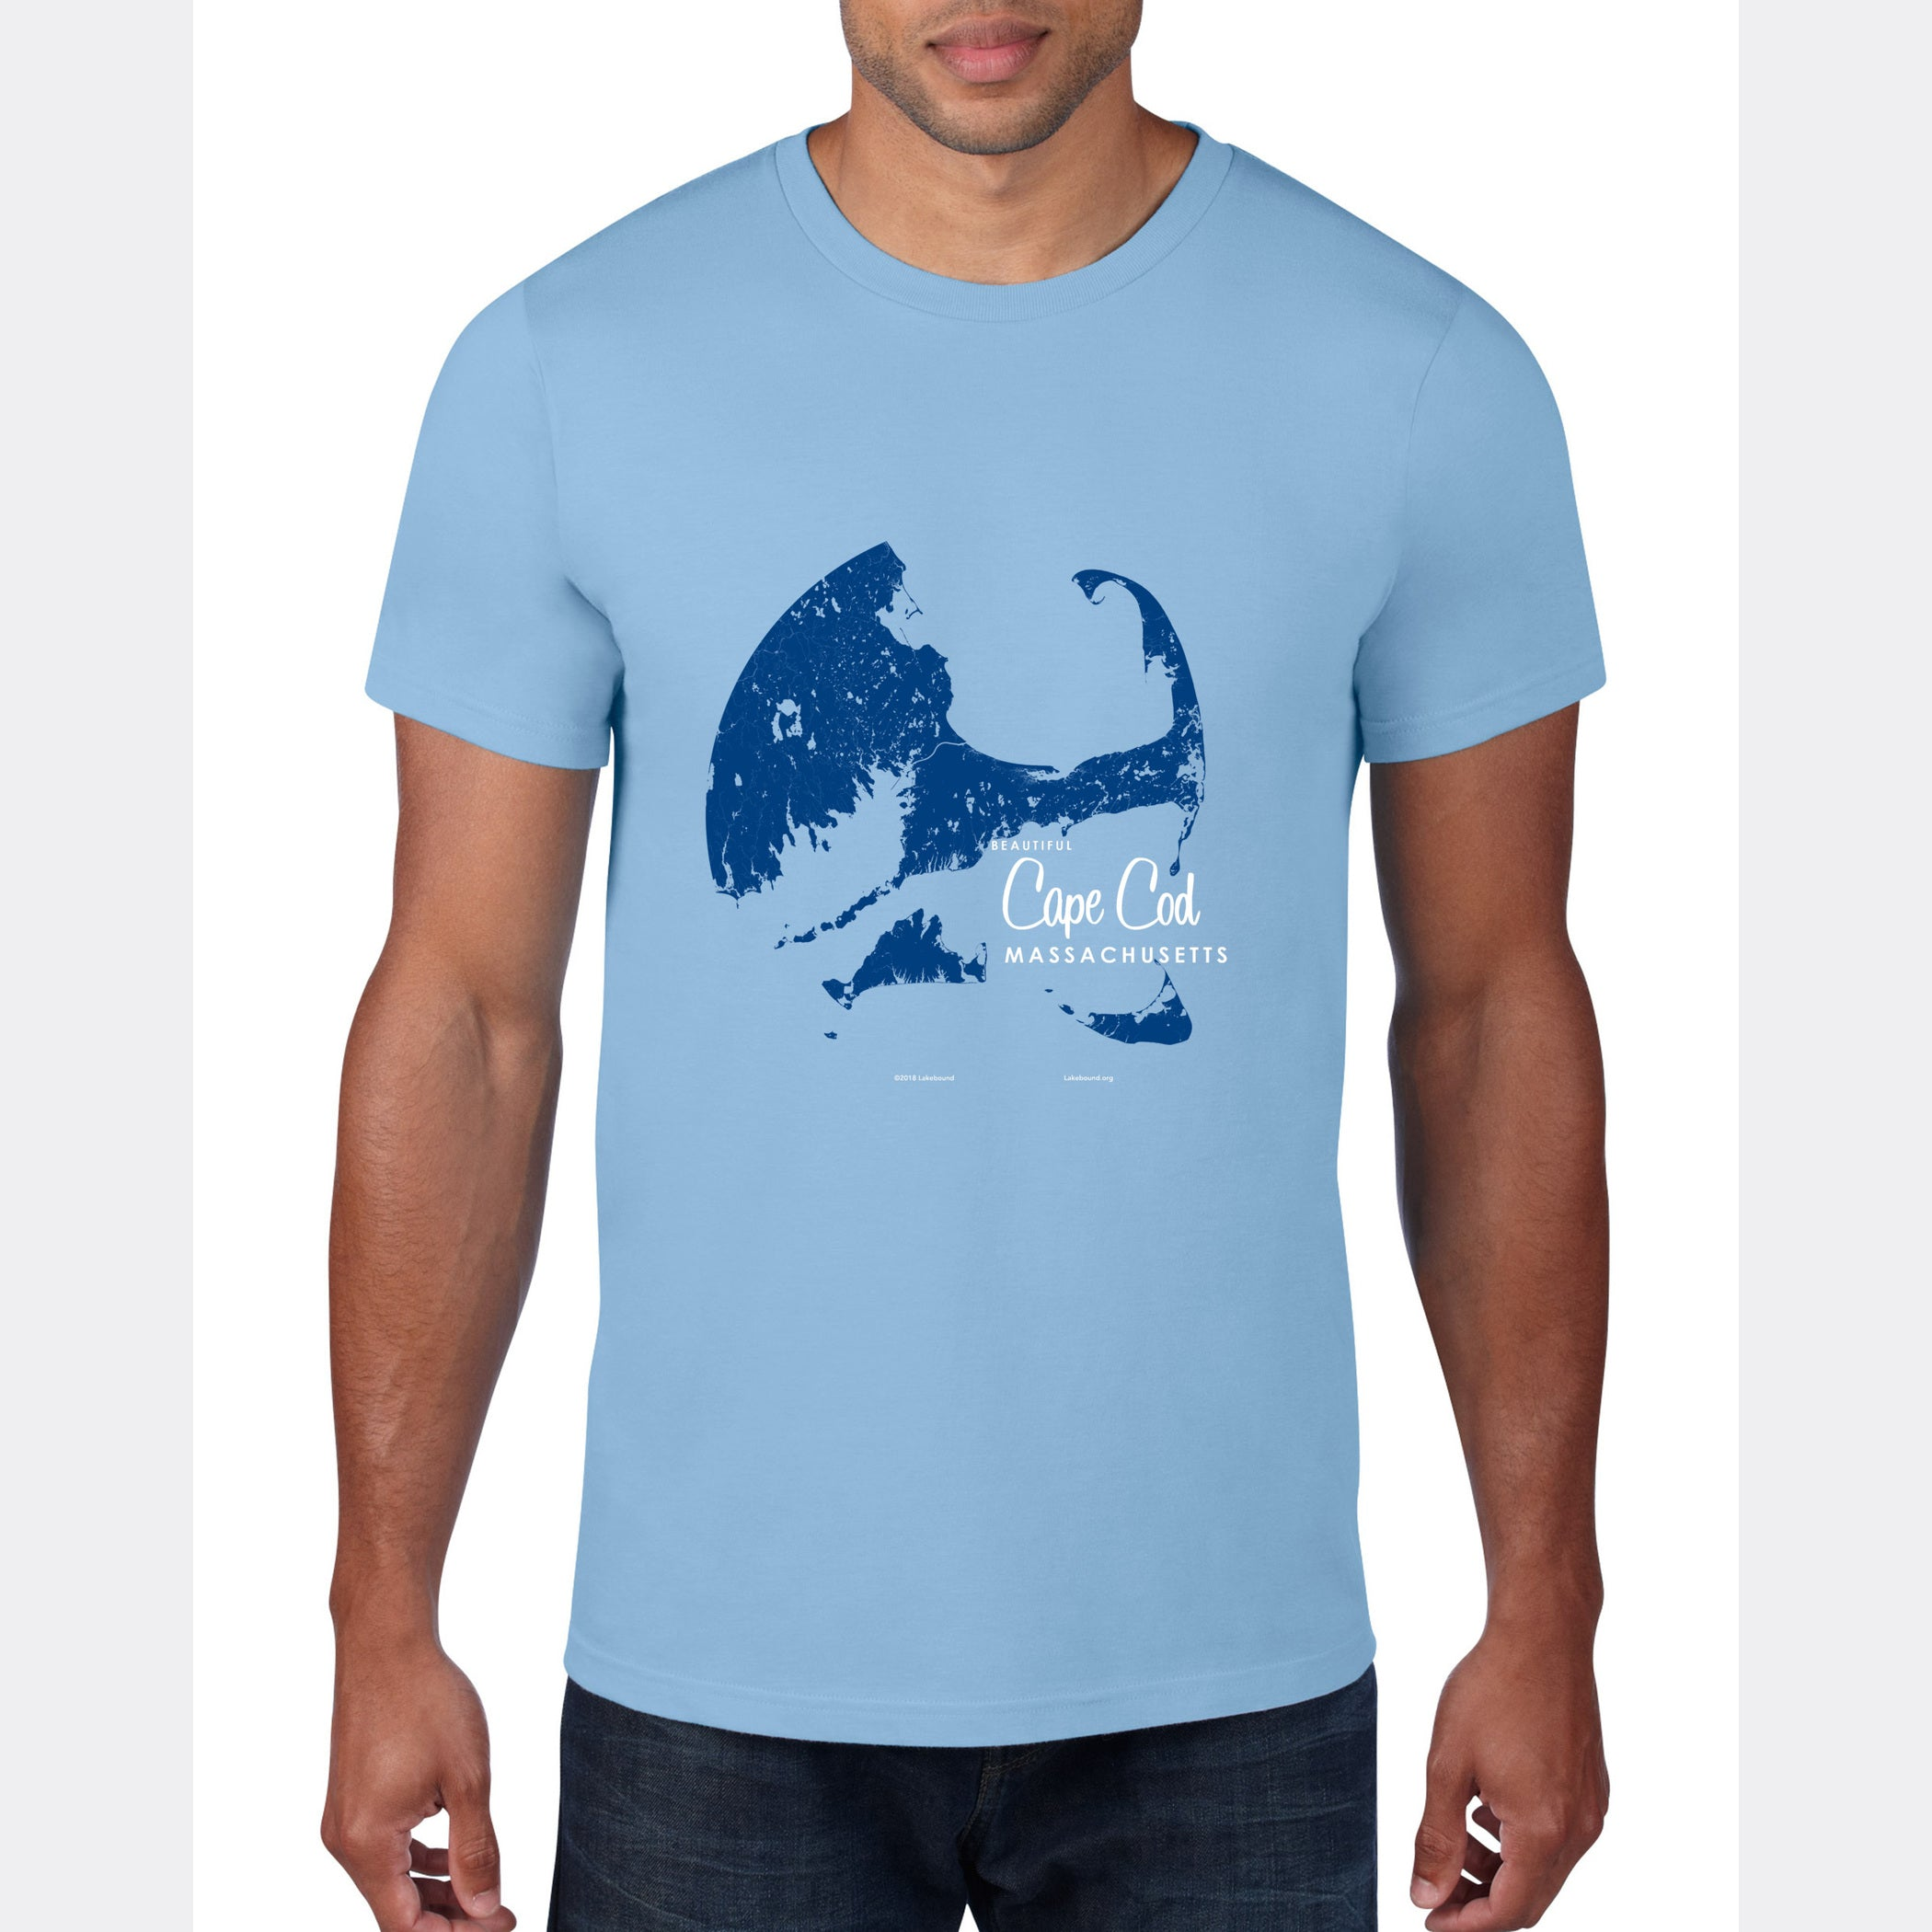 Cape Cod Massachusetts, T-Shirt Map Art